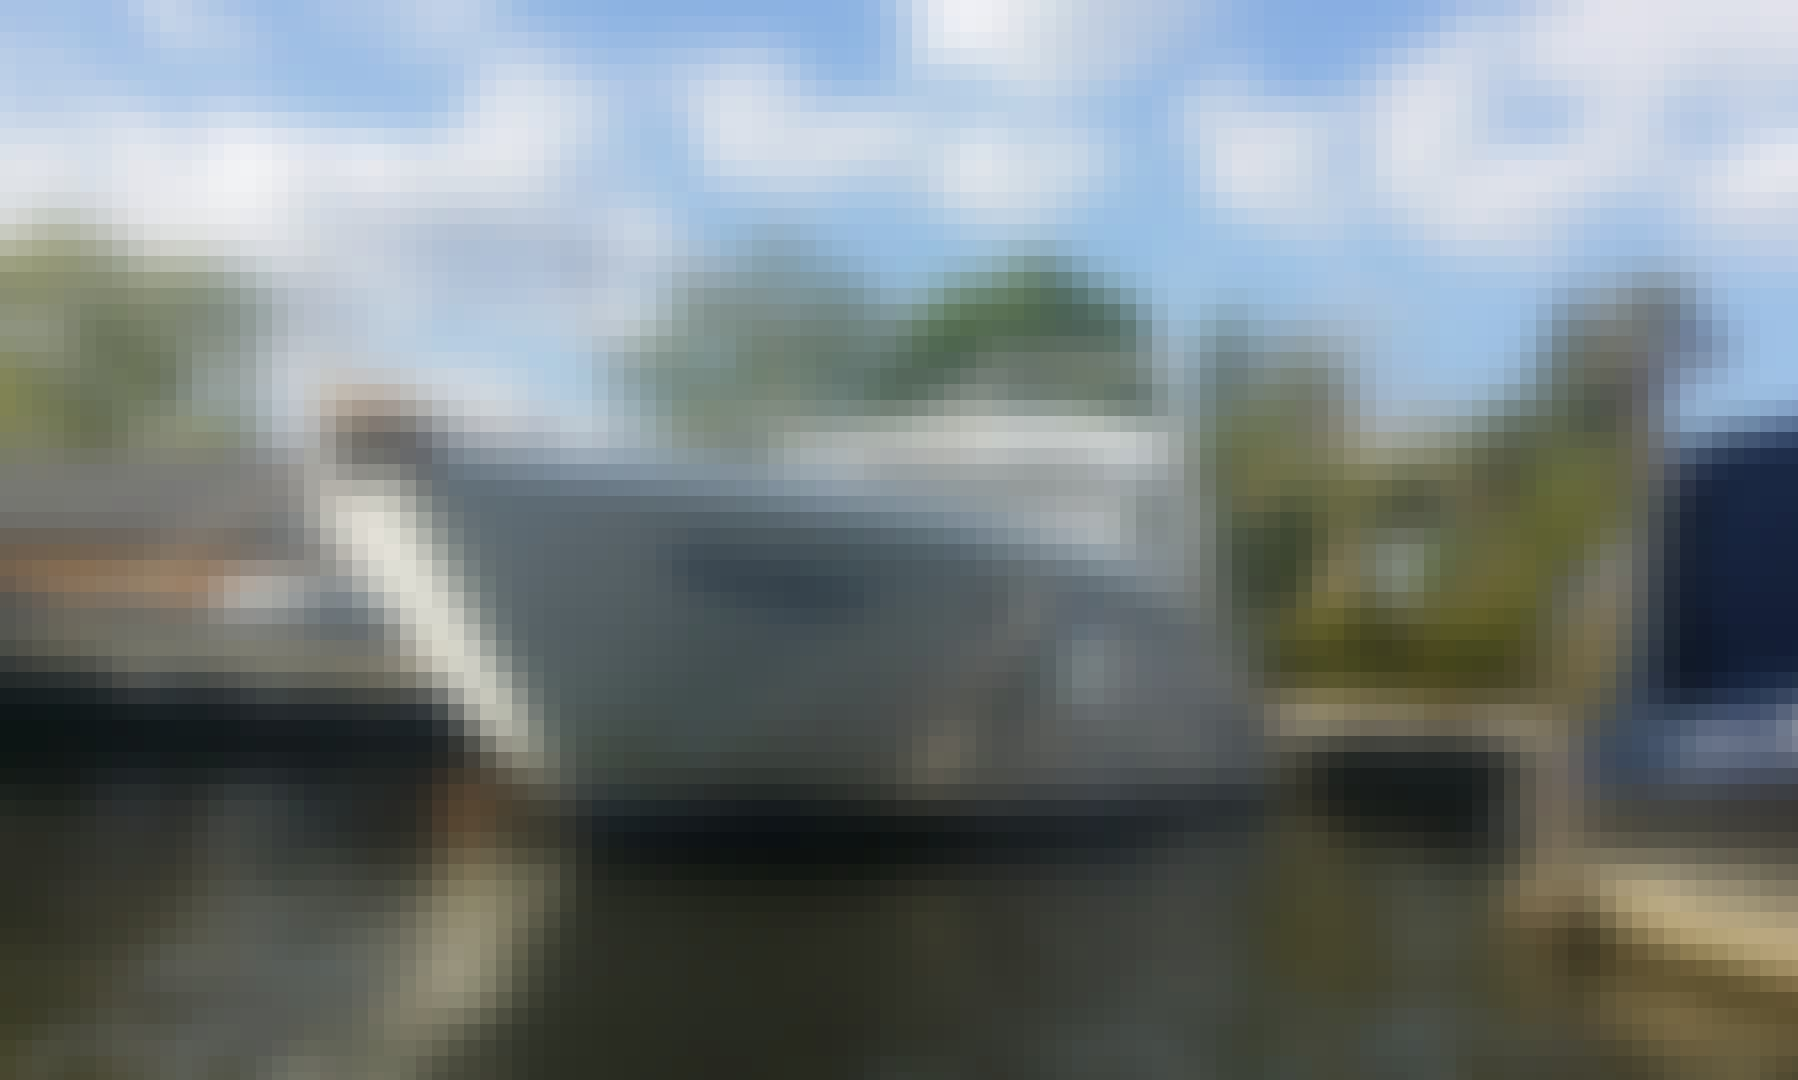 Motor Yacht rental in Molesey